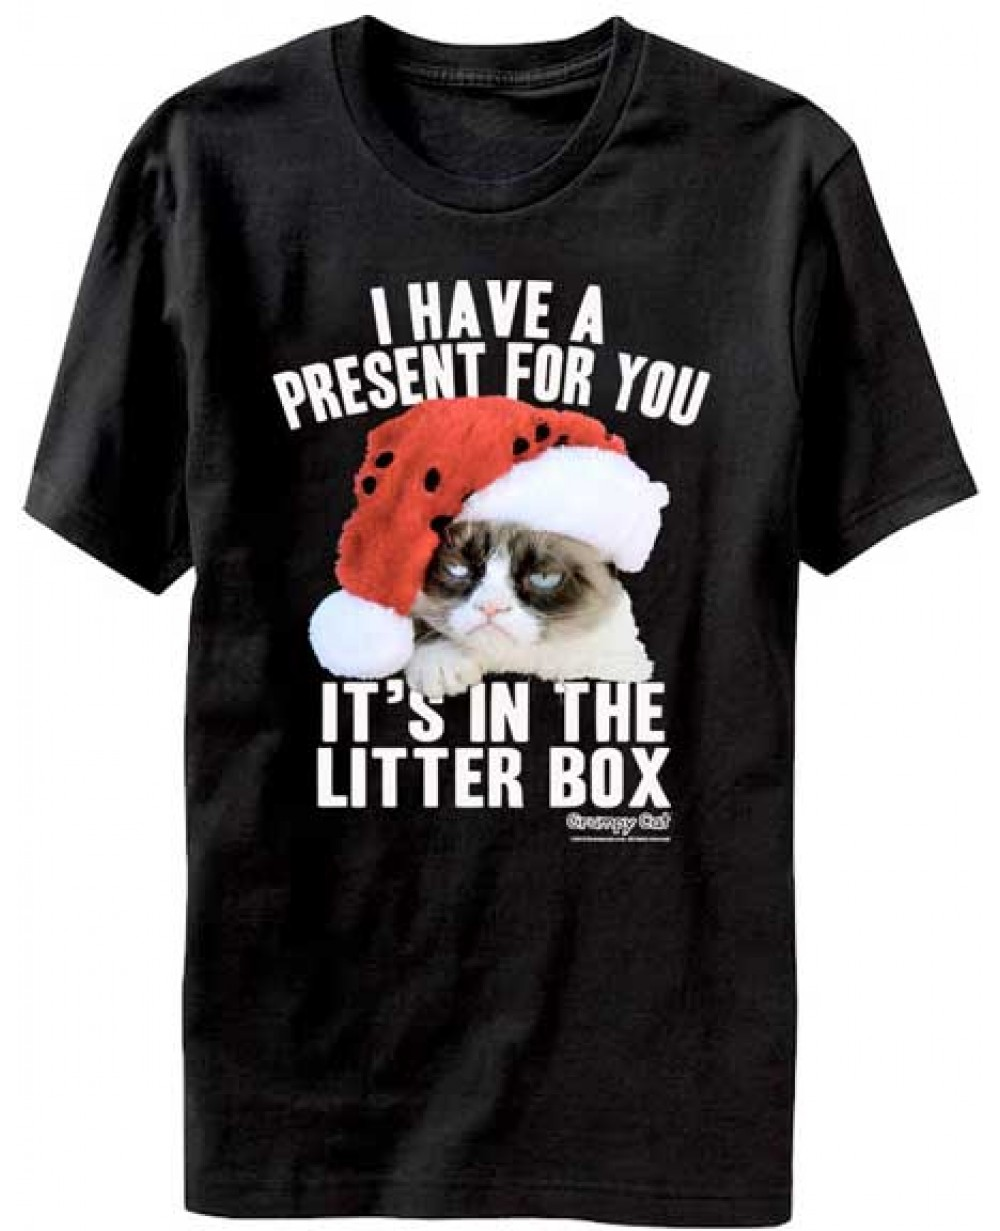 149580adc32e60 more views grumpy cat litter box christmas t shirt. lost gods ugly ...